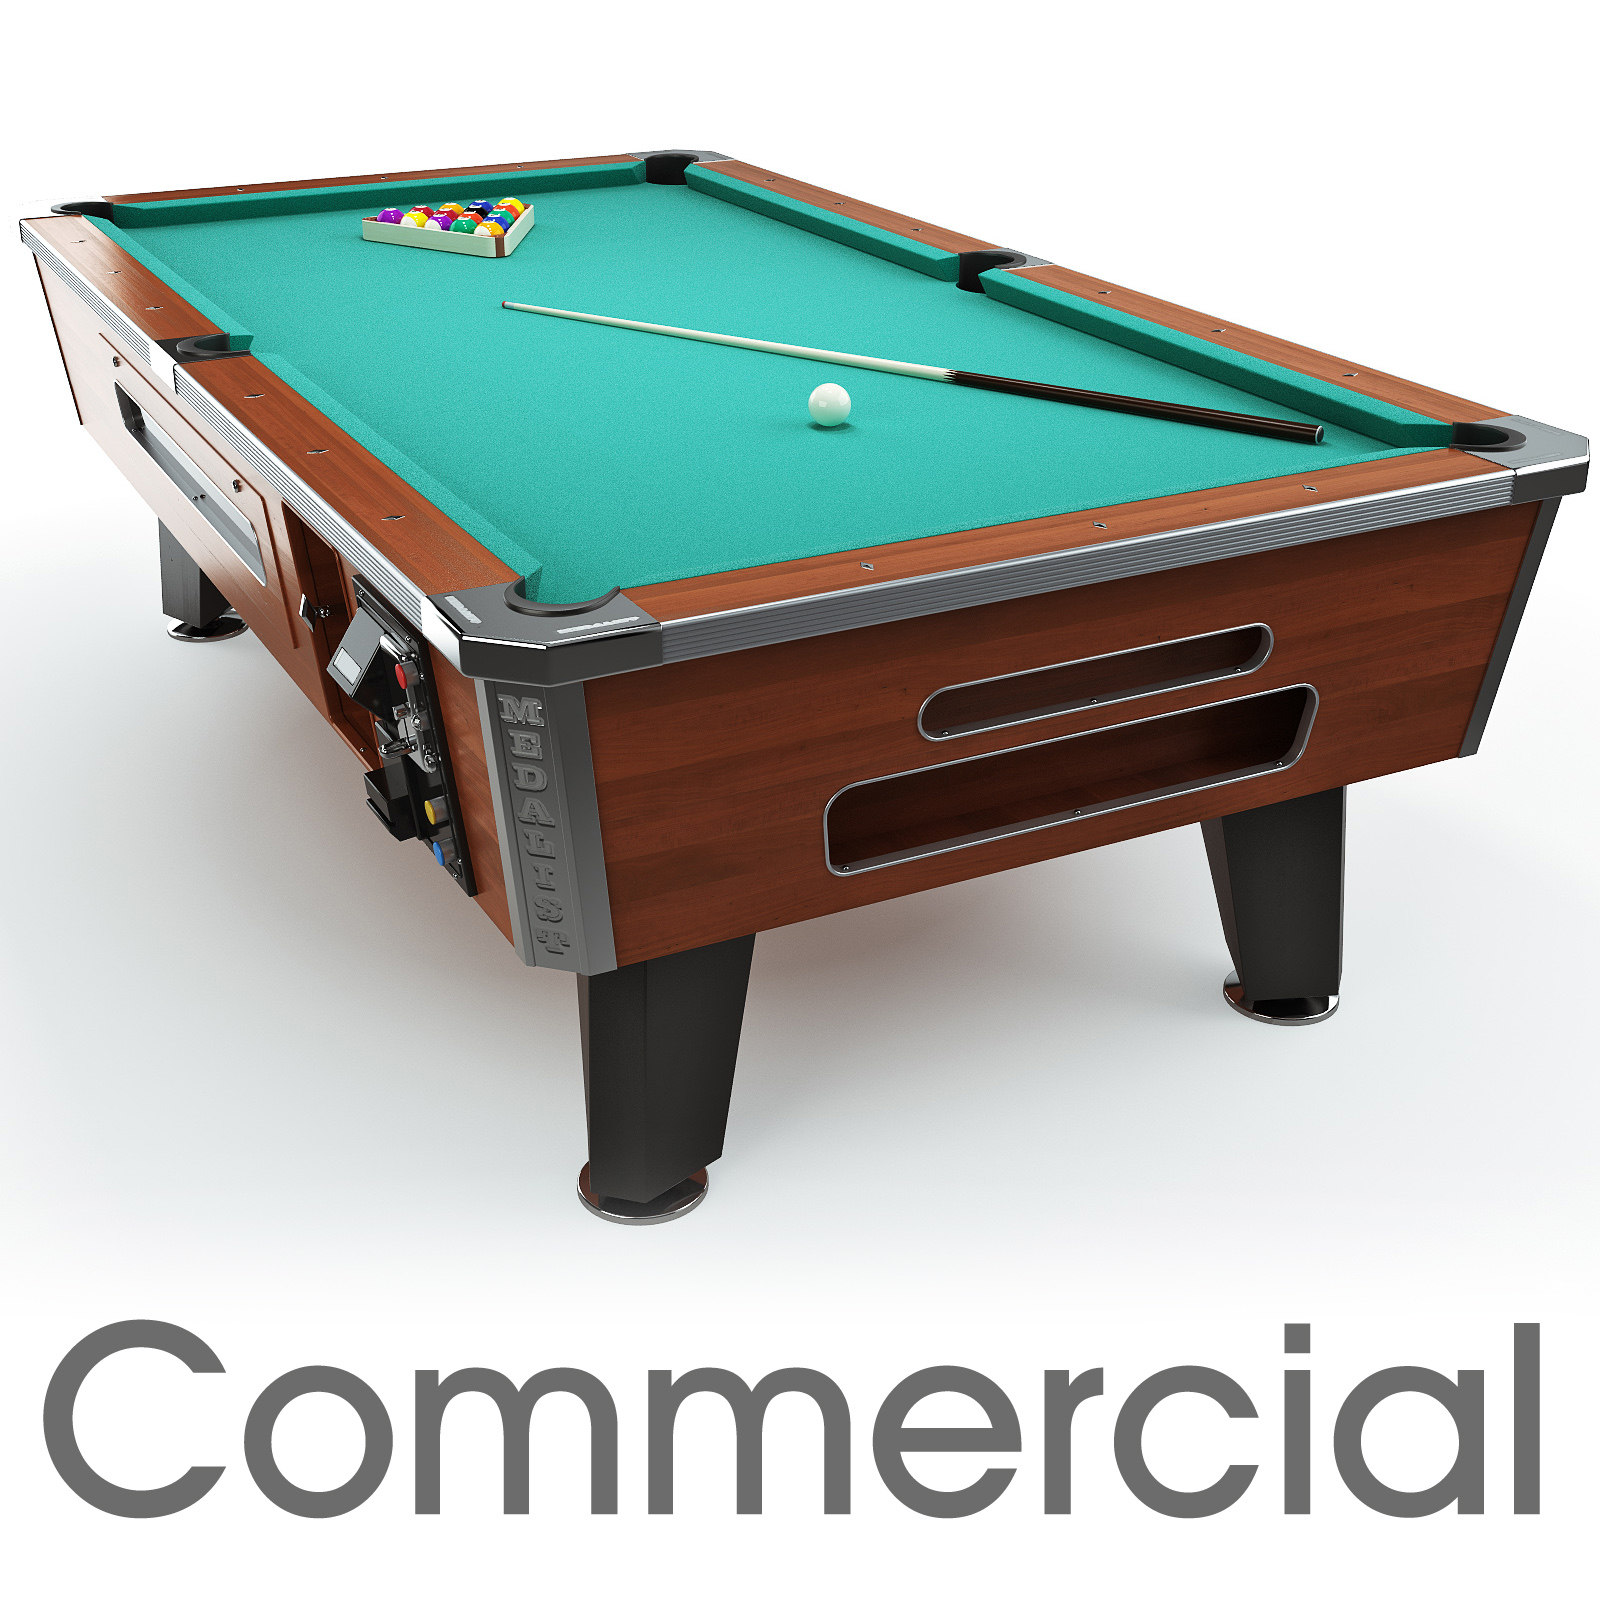 Pool_table_8ft_Commercial_00.jpg